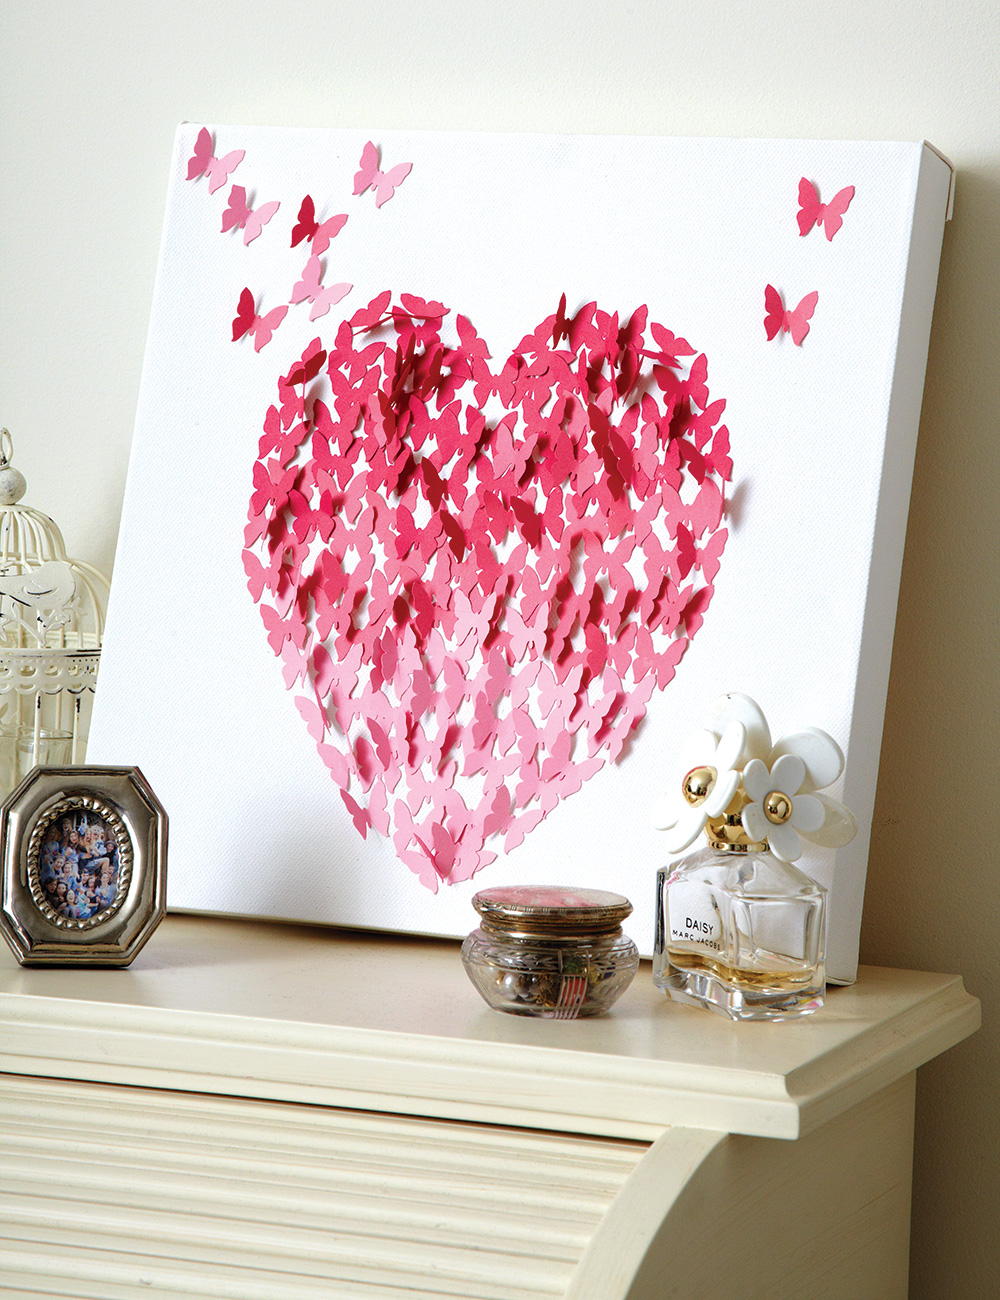 Make Love Heart Canvas Wall Art For Valentine 39 S Day